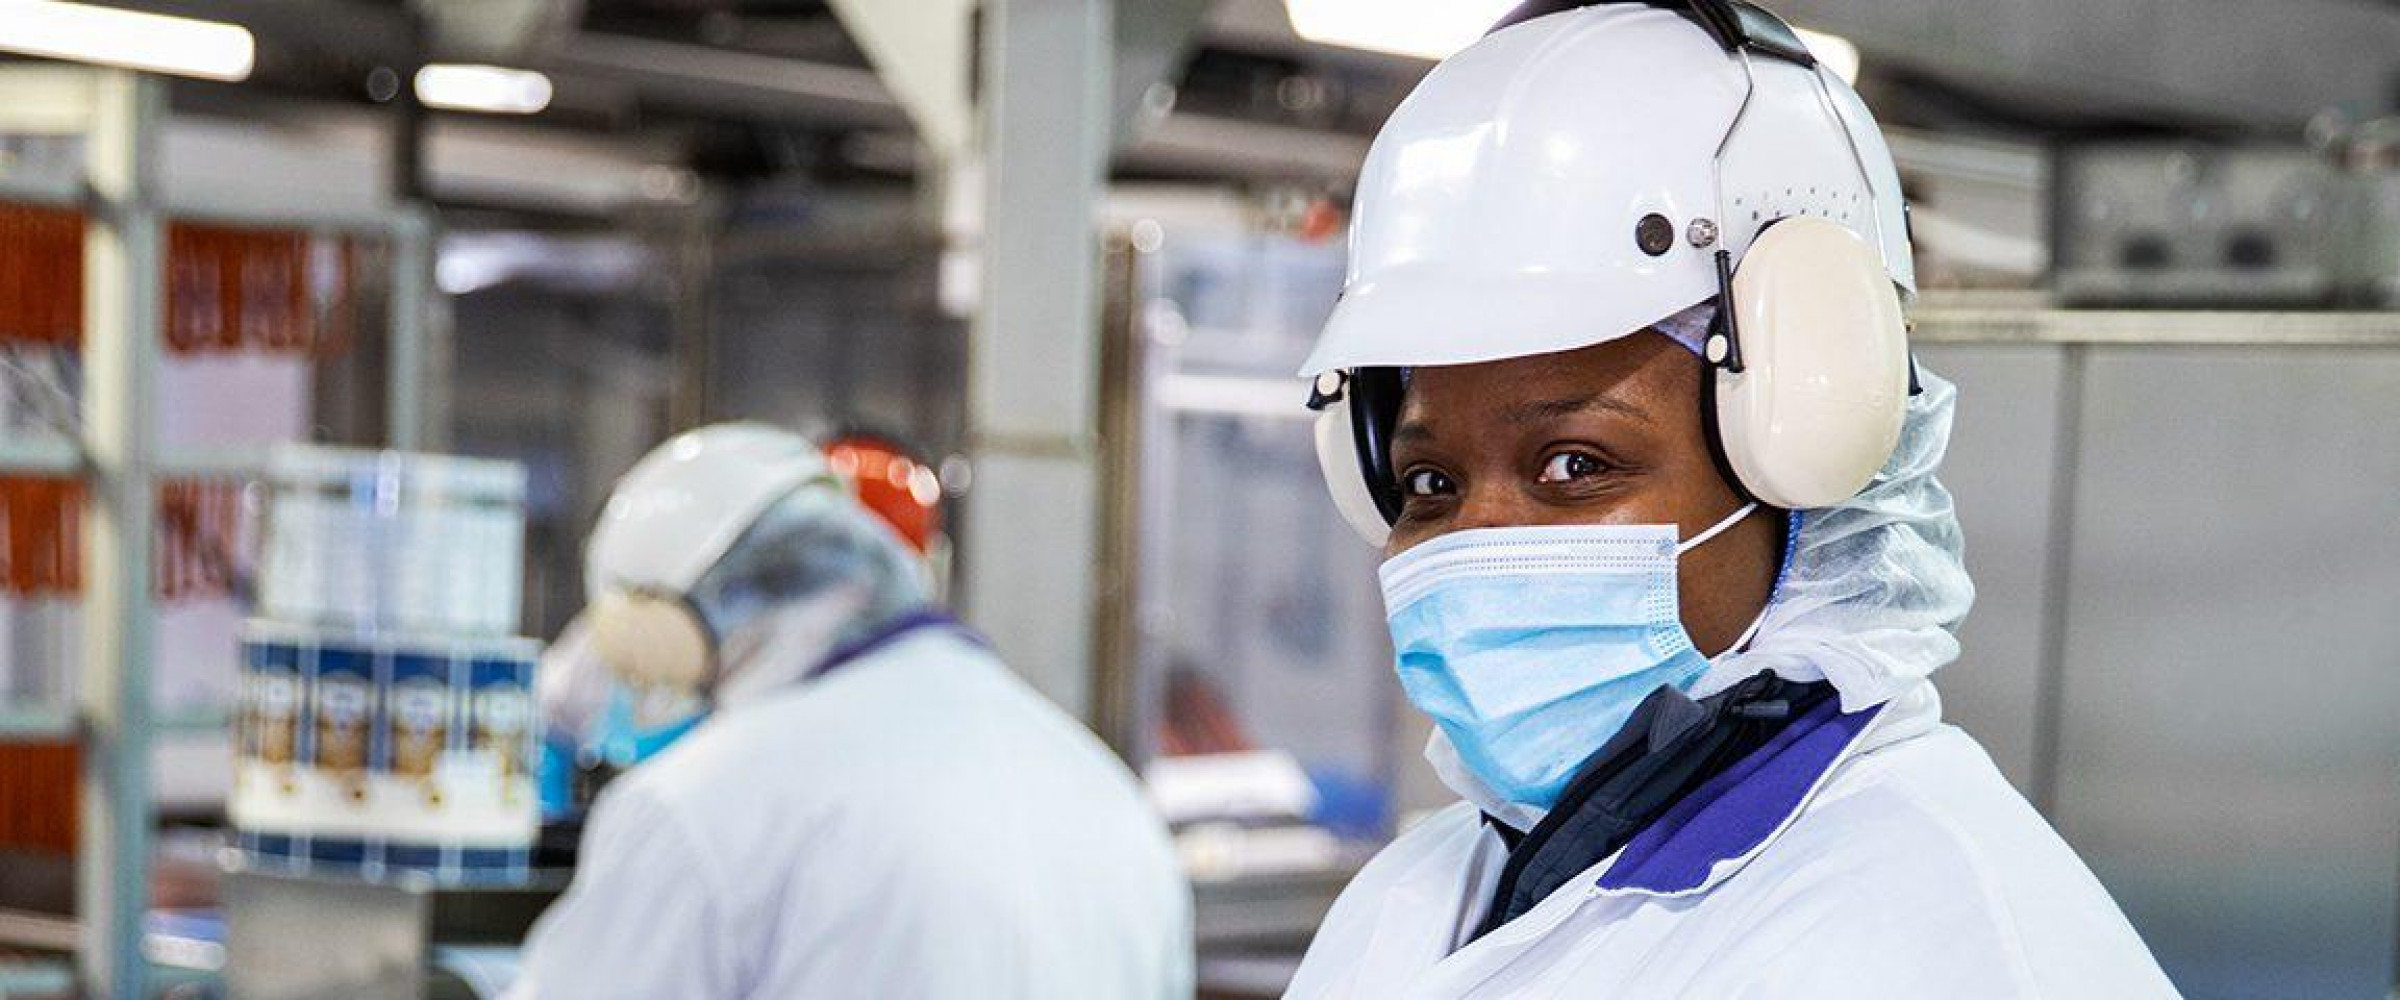 Employee looking at camera in production plant